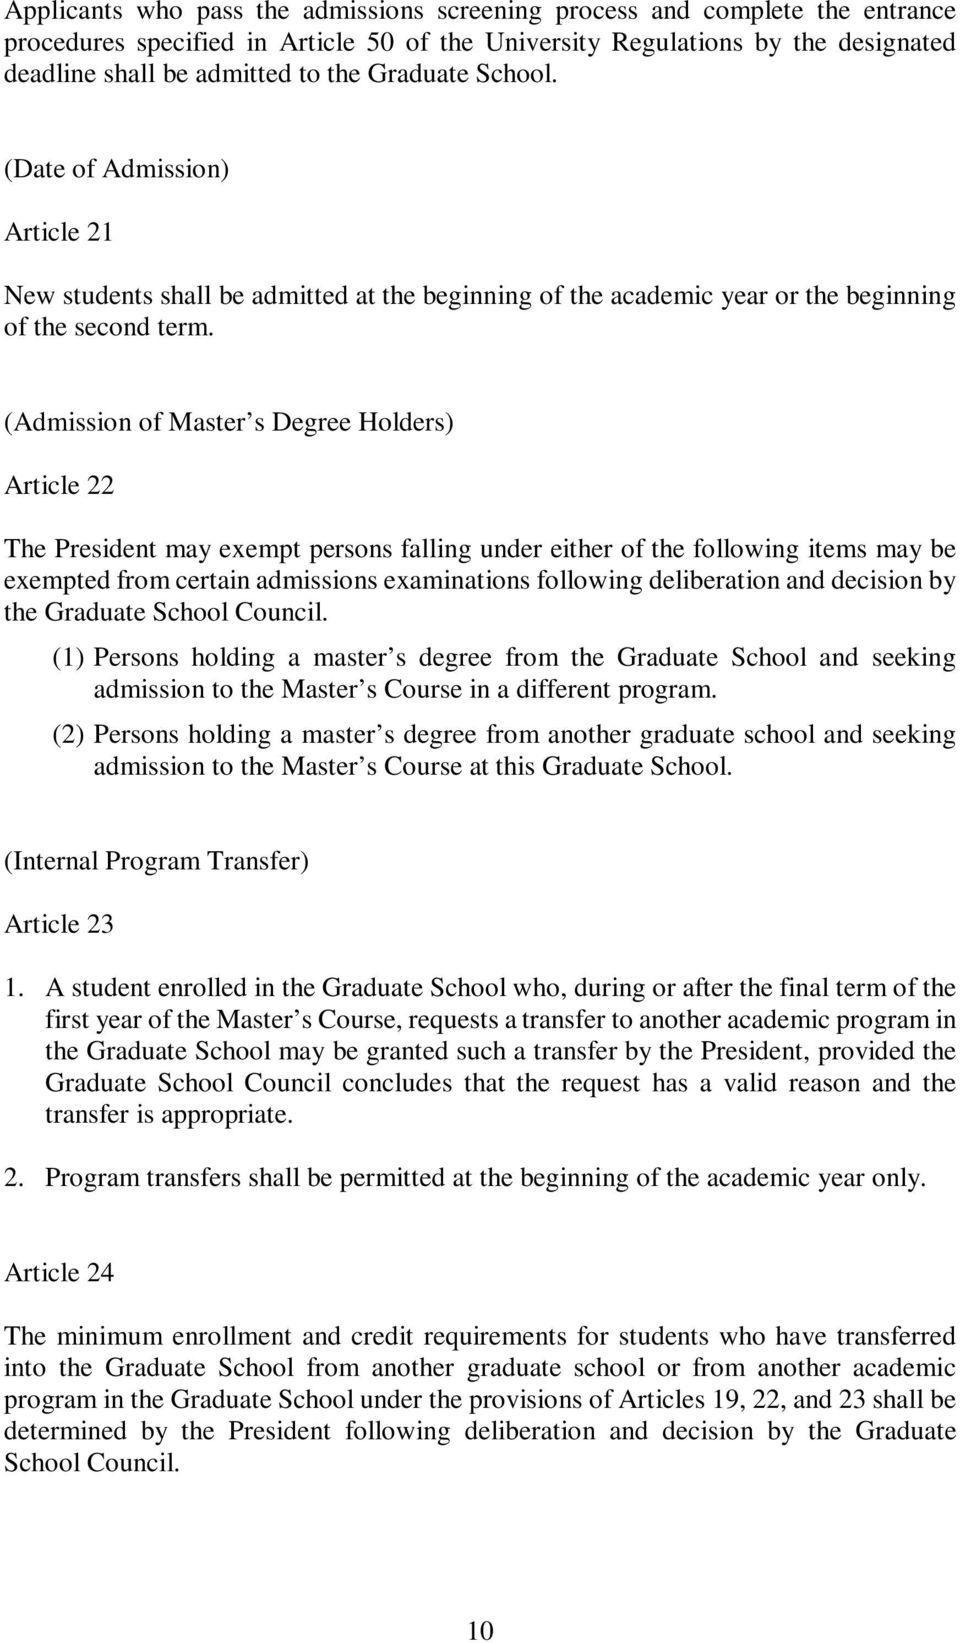 (Admission of Master s Degree Holders) Article 22 The President may exempt persons falling under either of the following items may be exempted from certain admissions examinations following